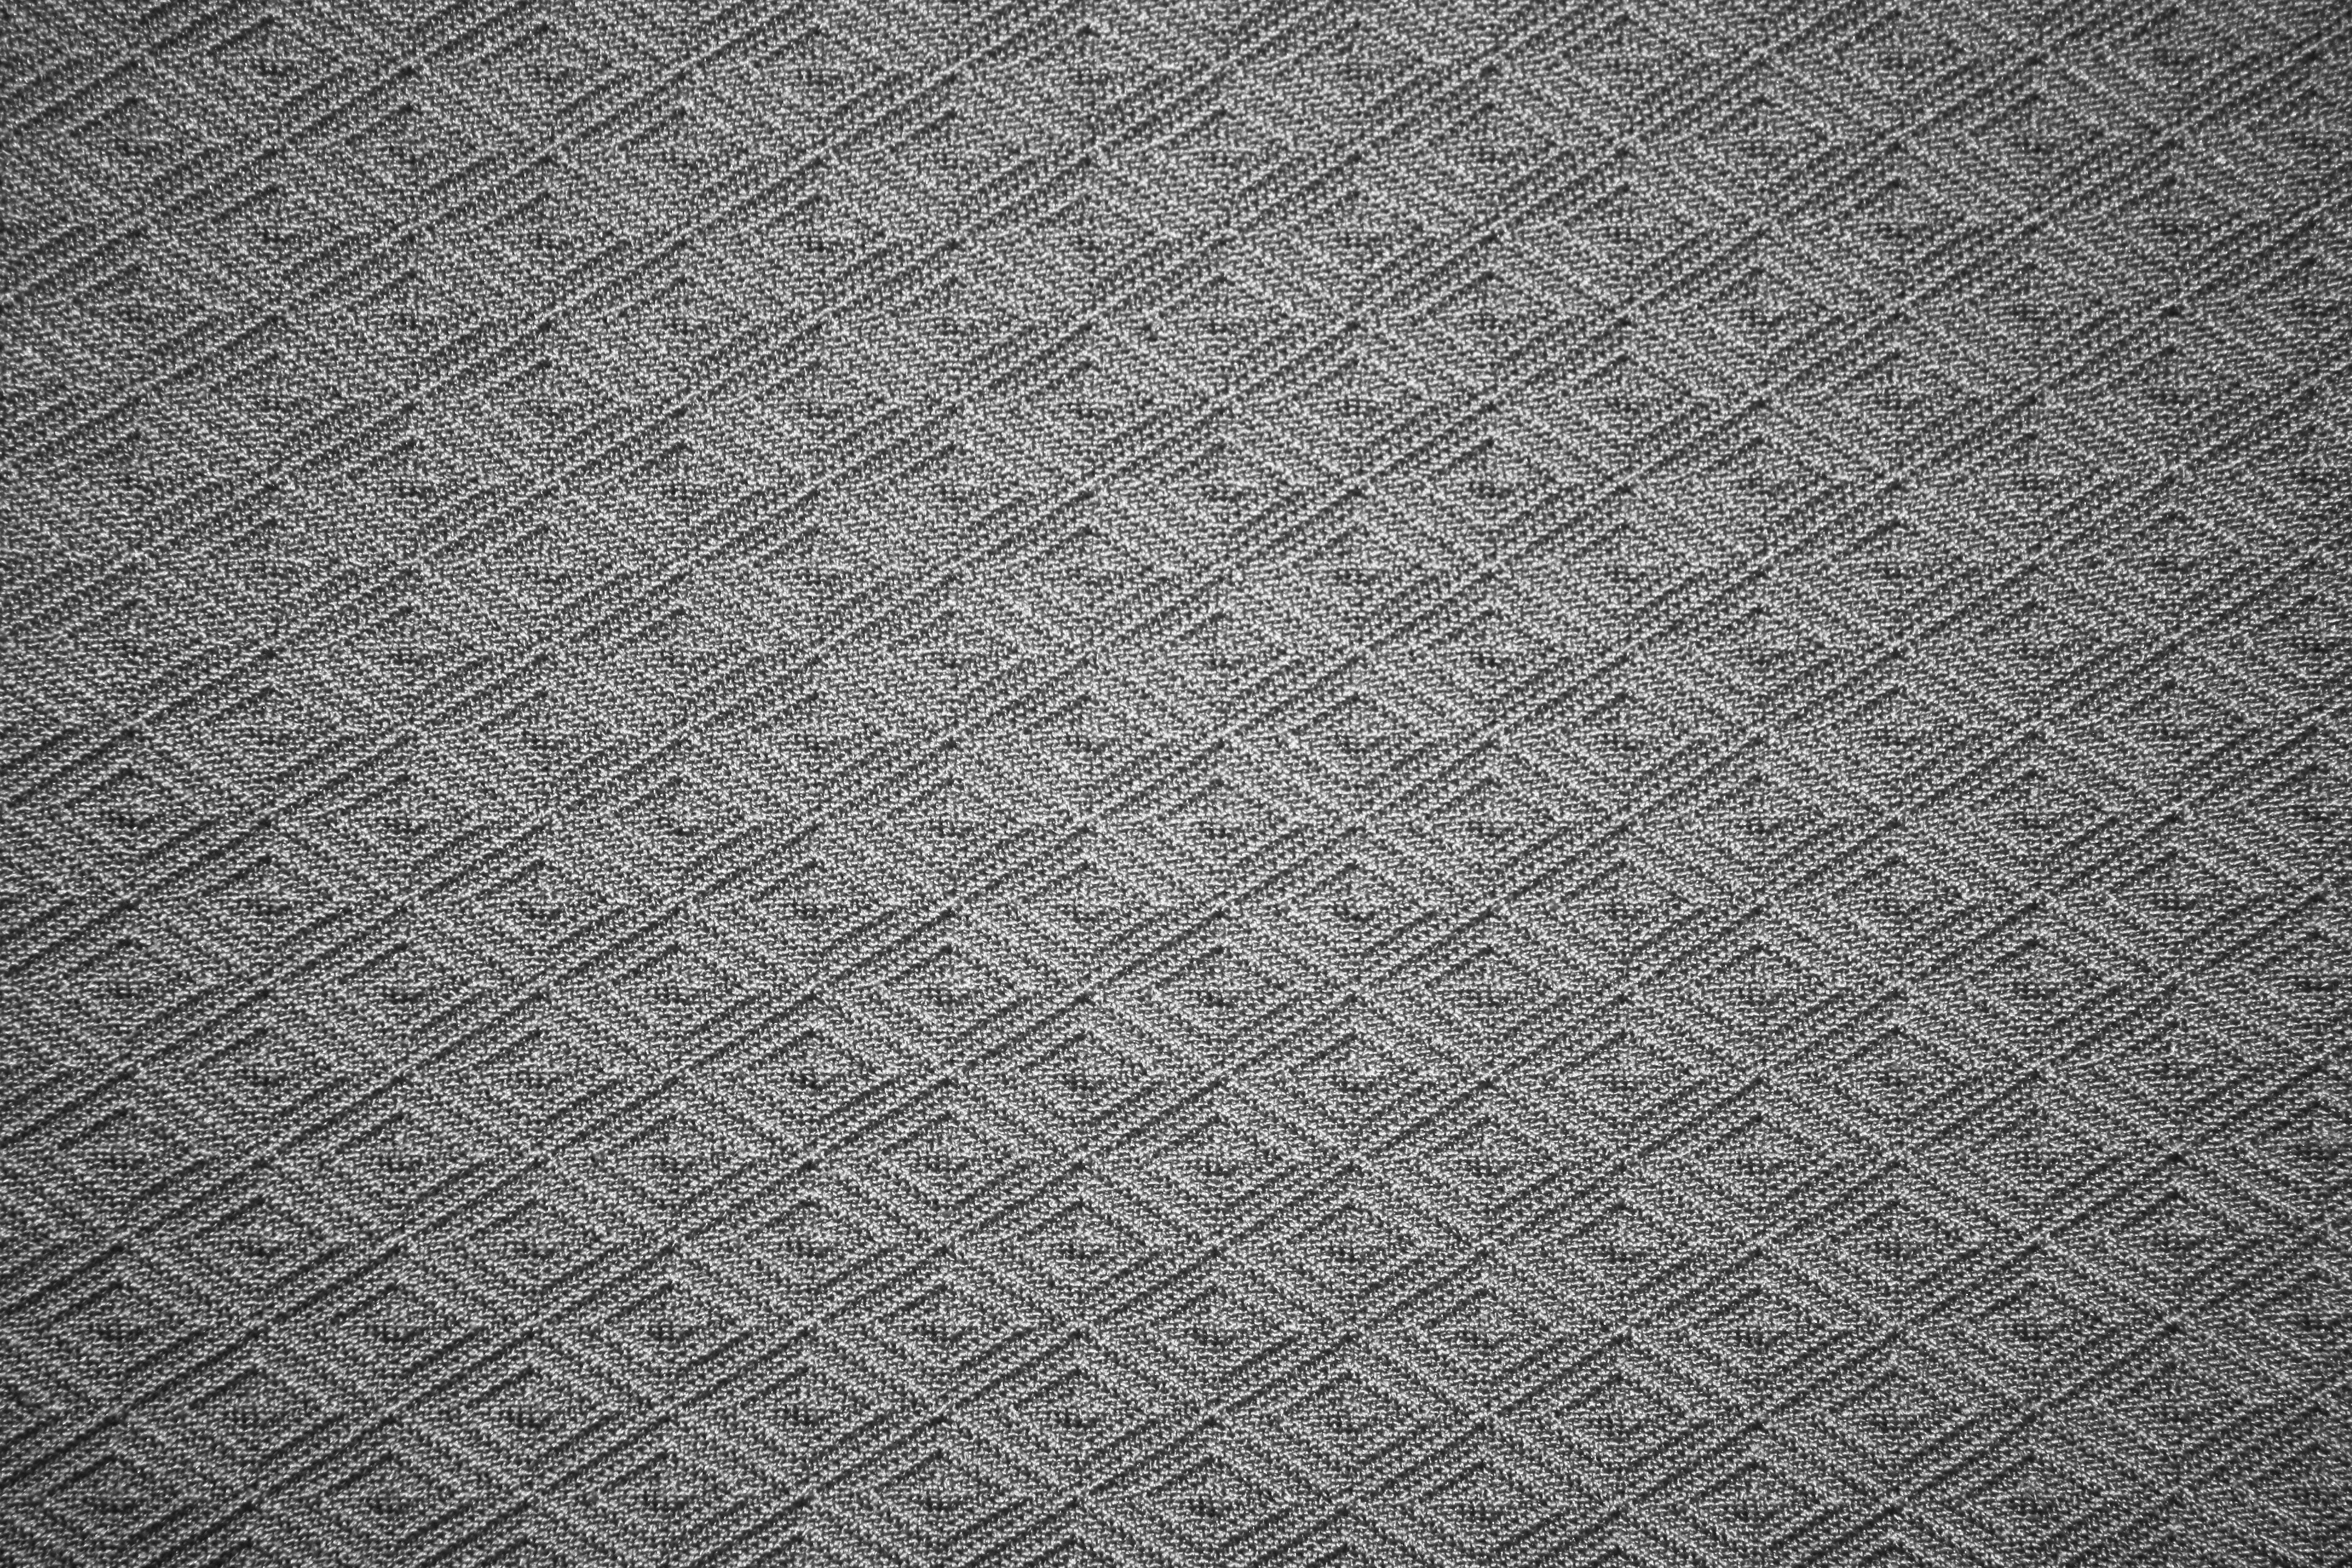 Gray knit fabric with diamond pattern texture picture for Patterned material fabric